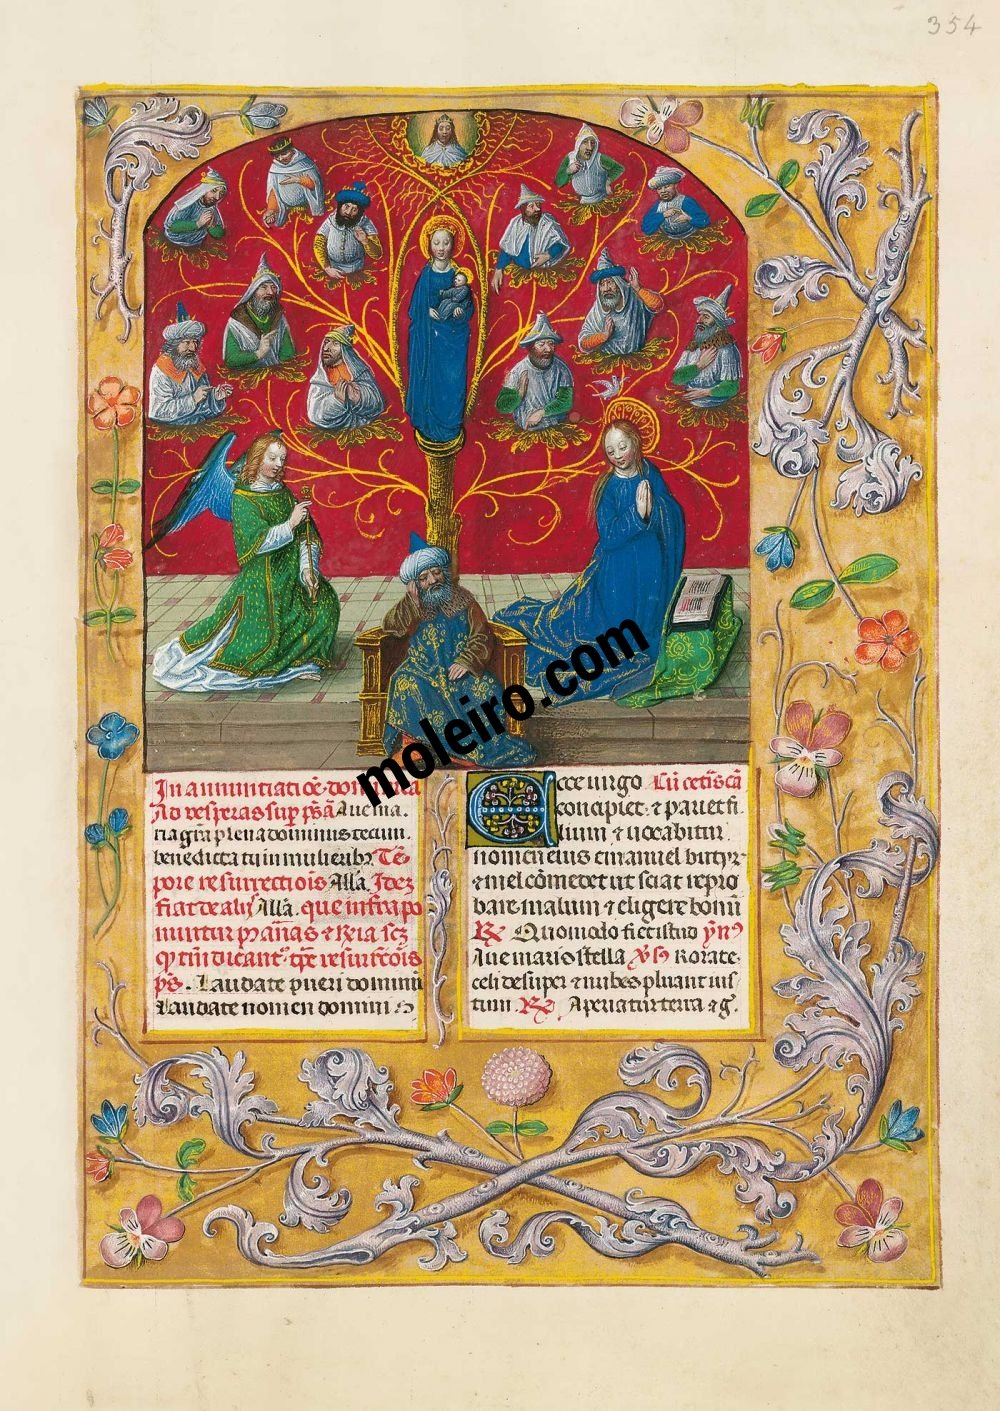 The Isabella Breviary f. 354r, The Tree of Jesse